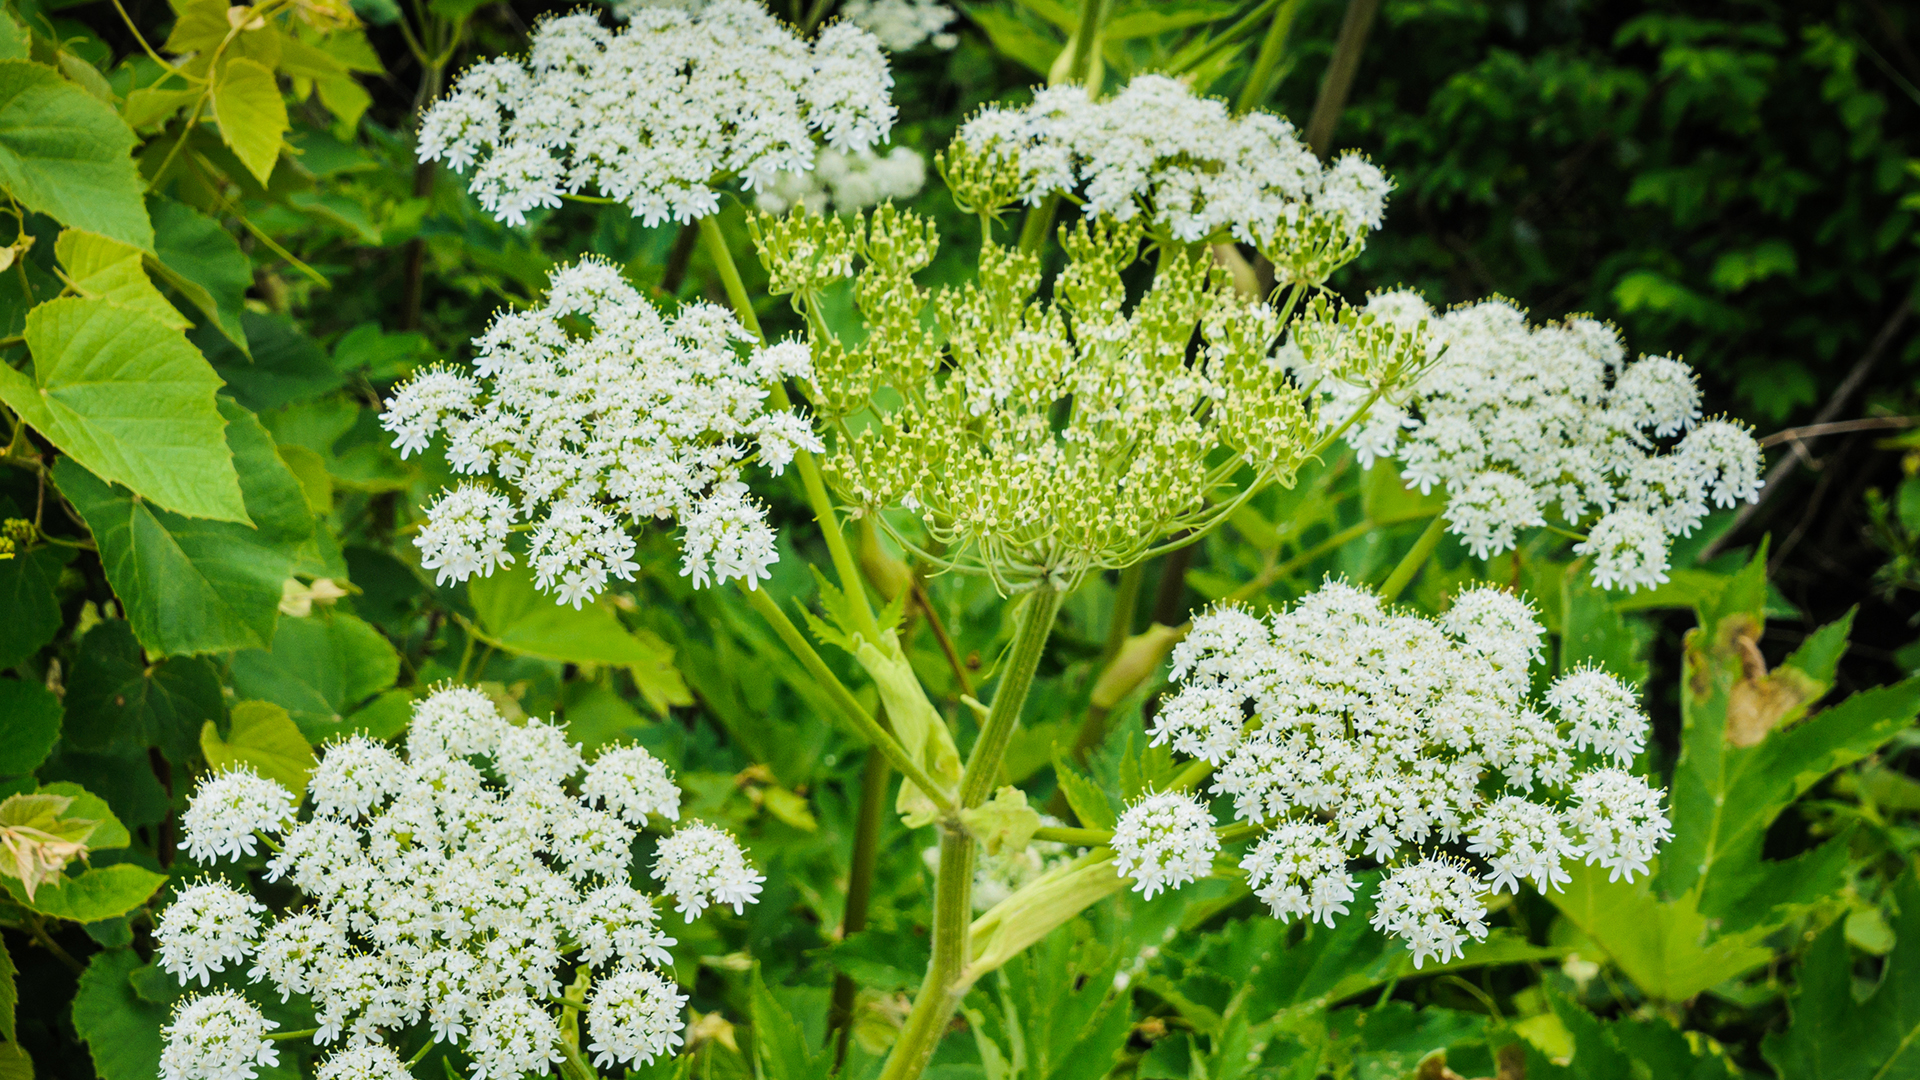 Giant Hogweed Toxic Plant With Sap That Causes Burns Blindness